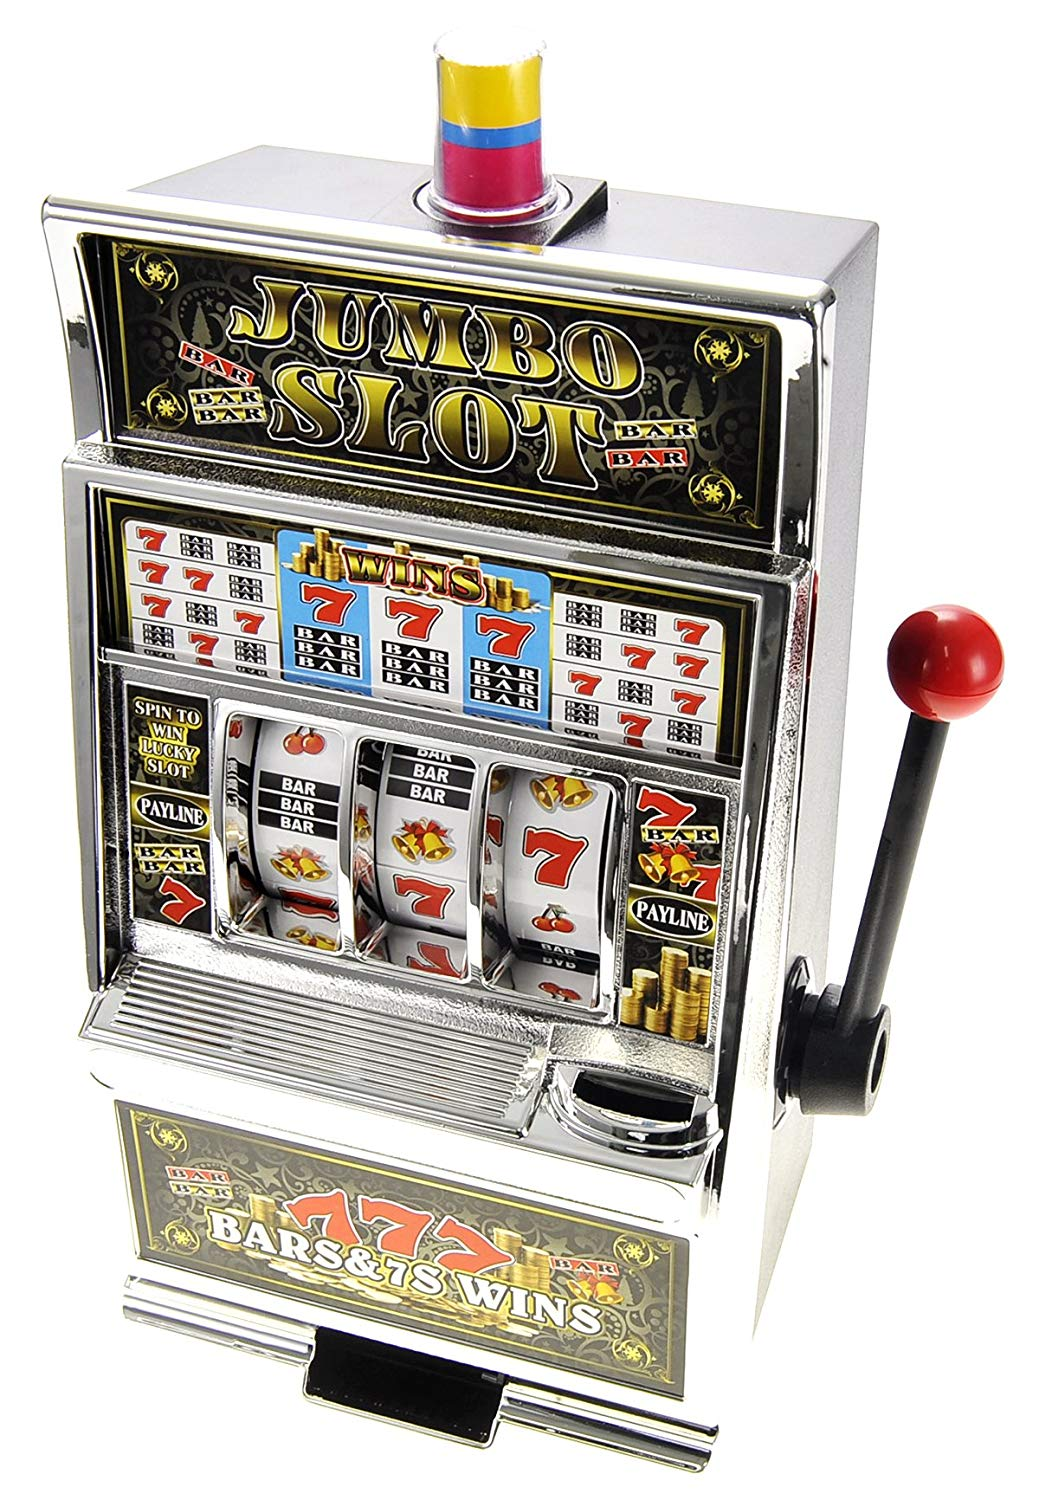 Slot machine piggy bank.